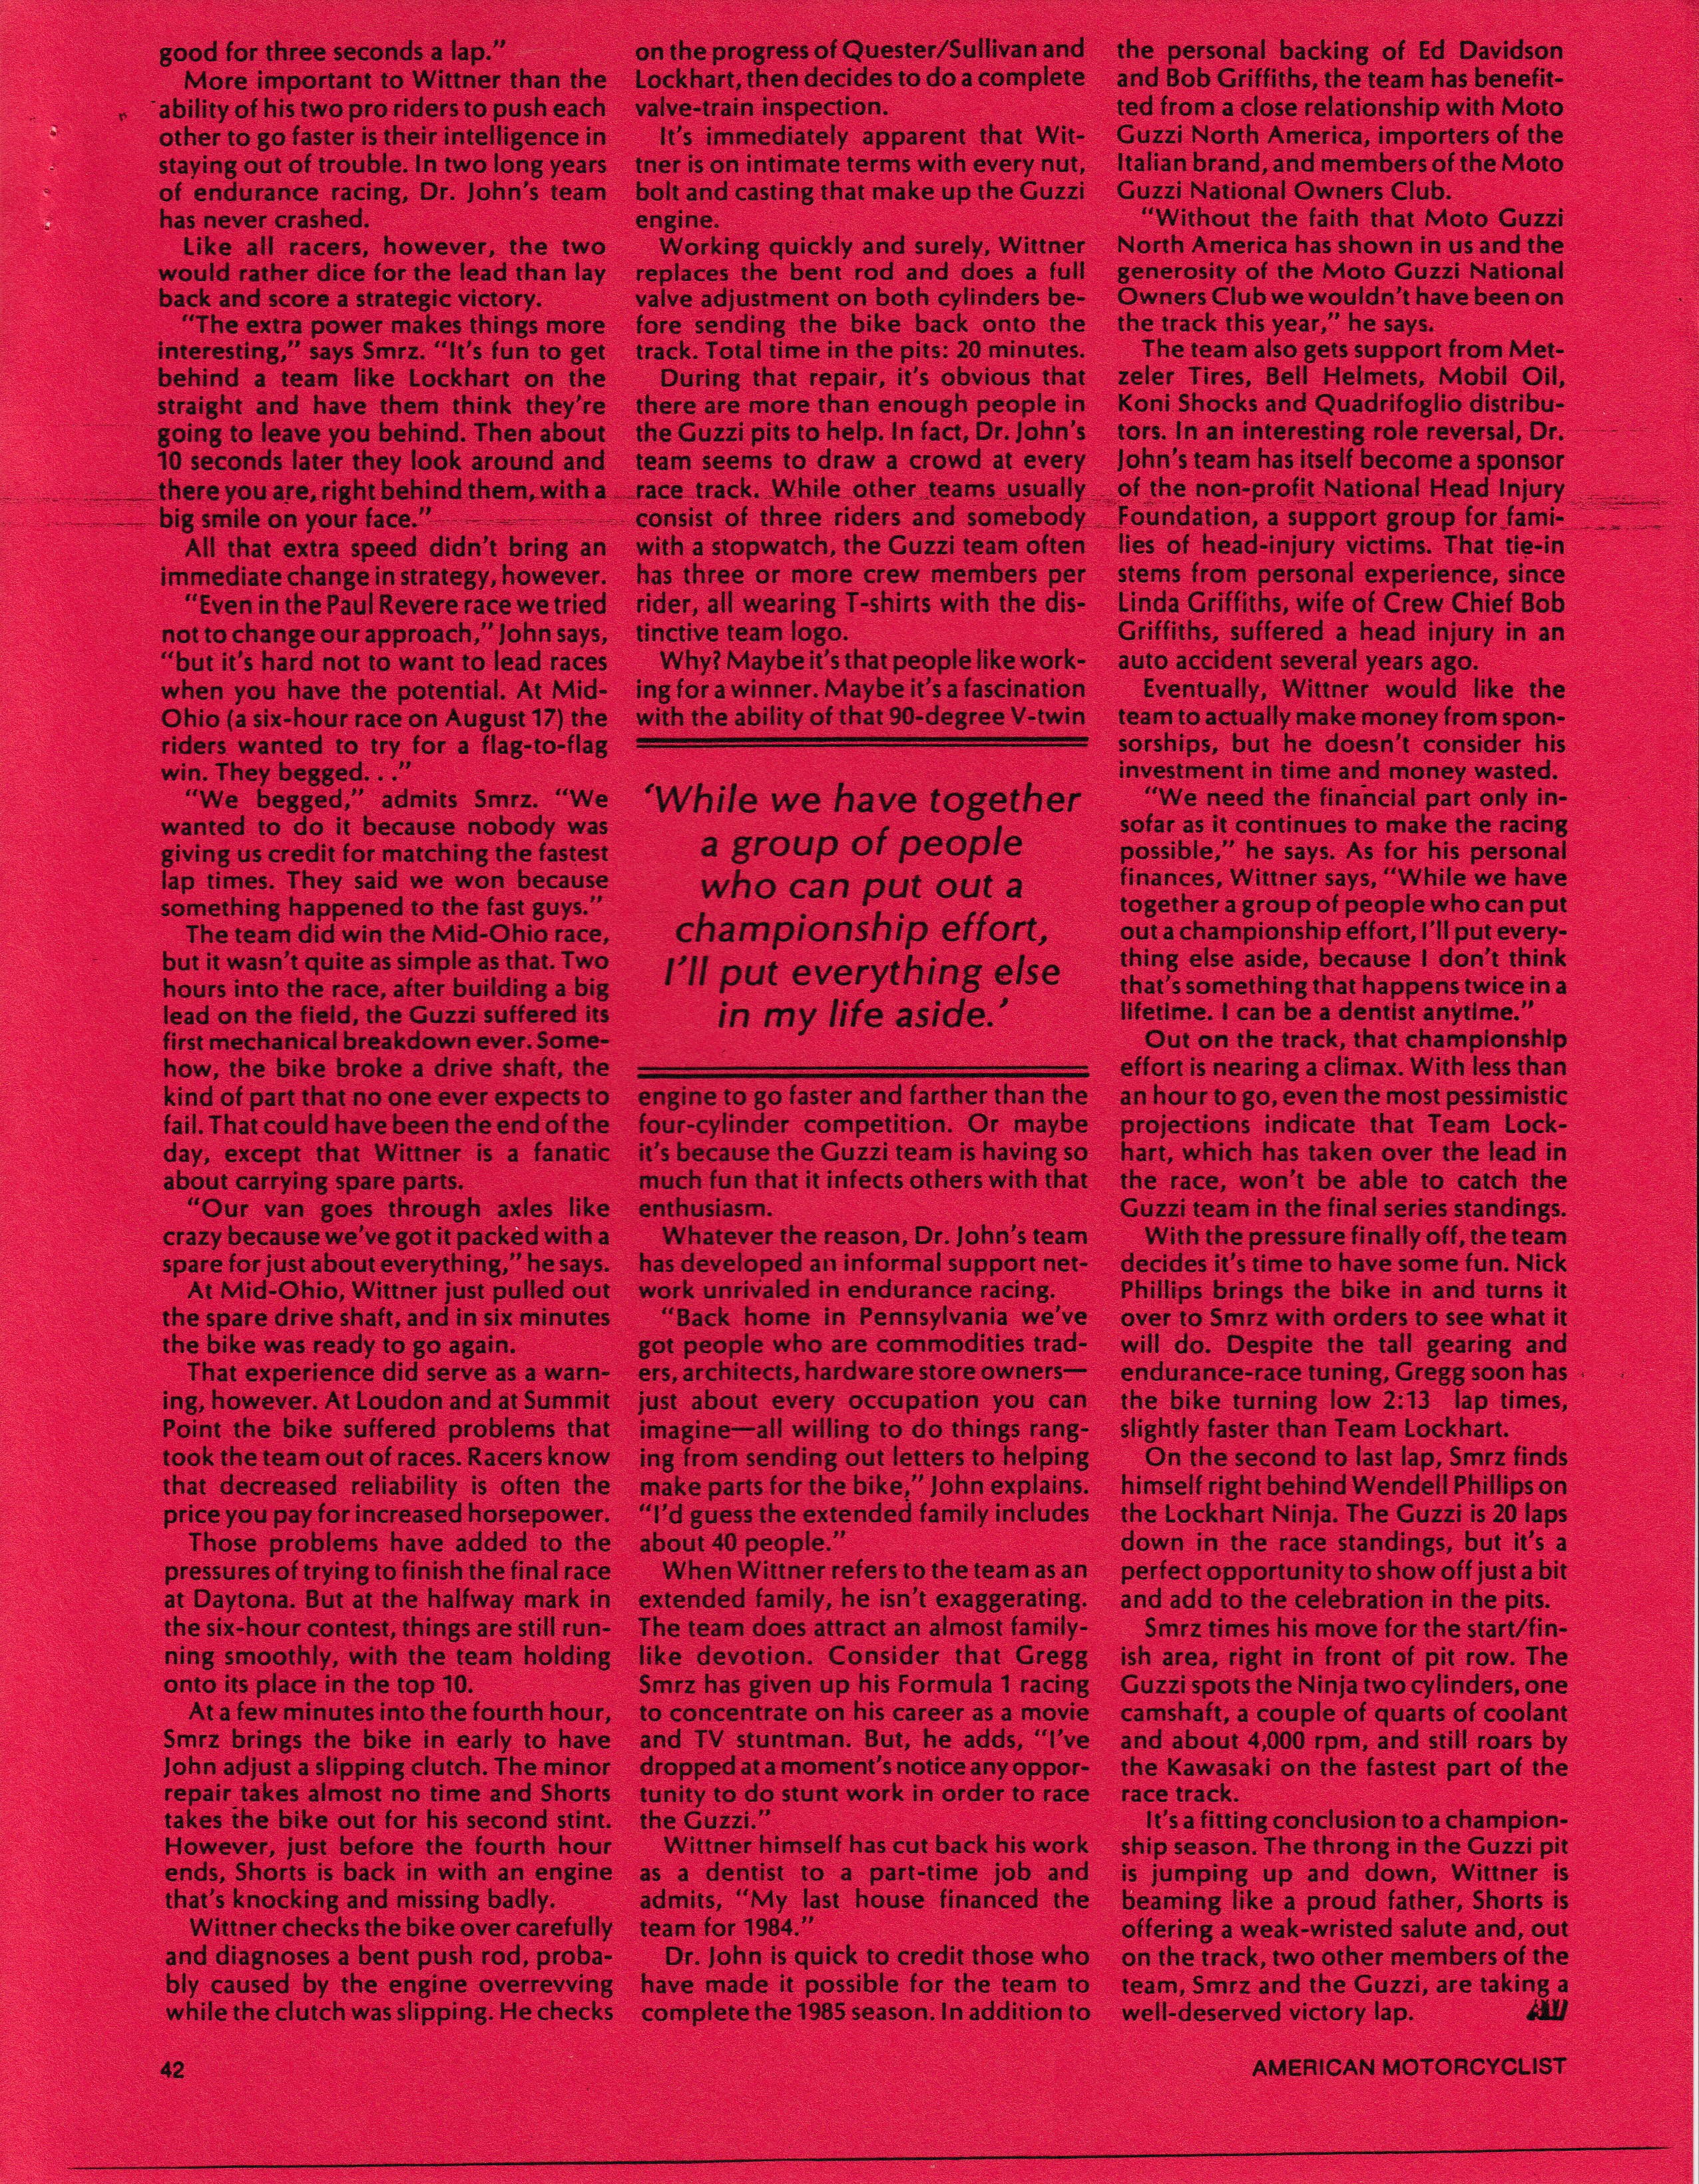 Article - American Motorcyclist (1986 January) Who are those guys? Dr. John's team rides a Guzzi to glory in endurance racing